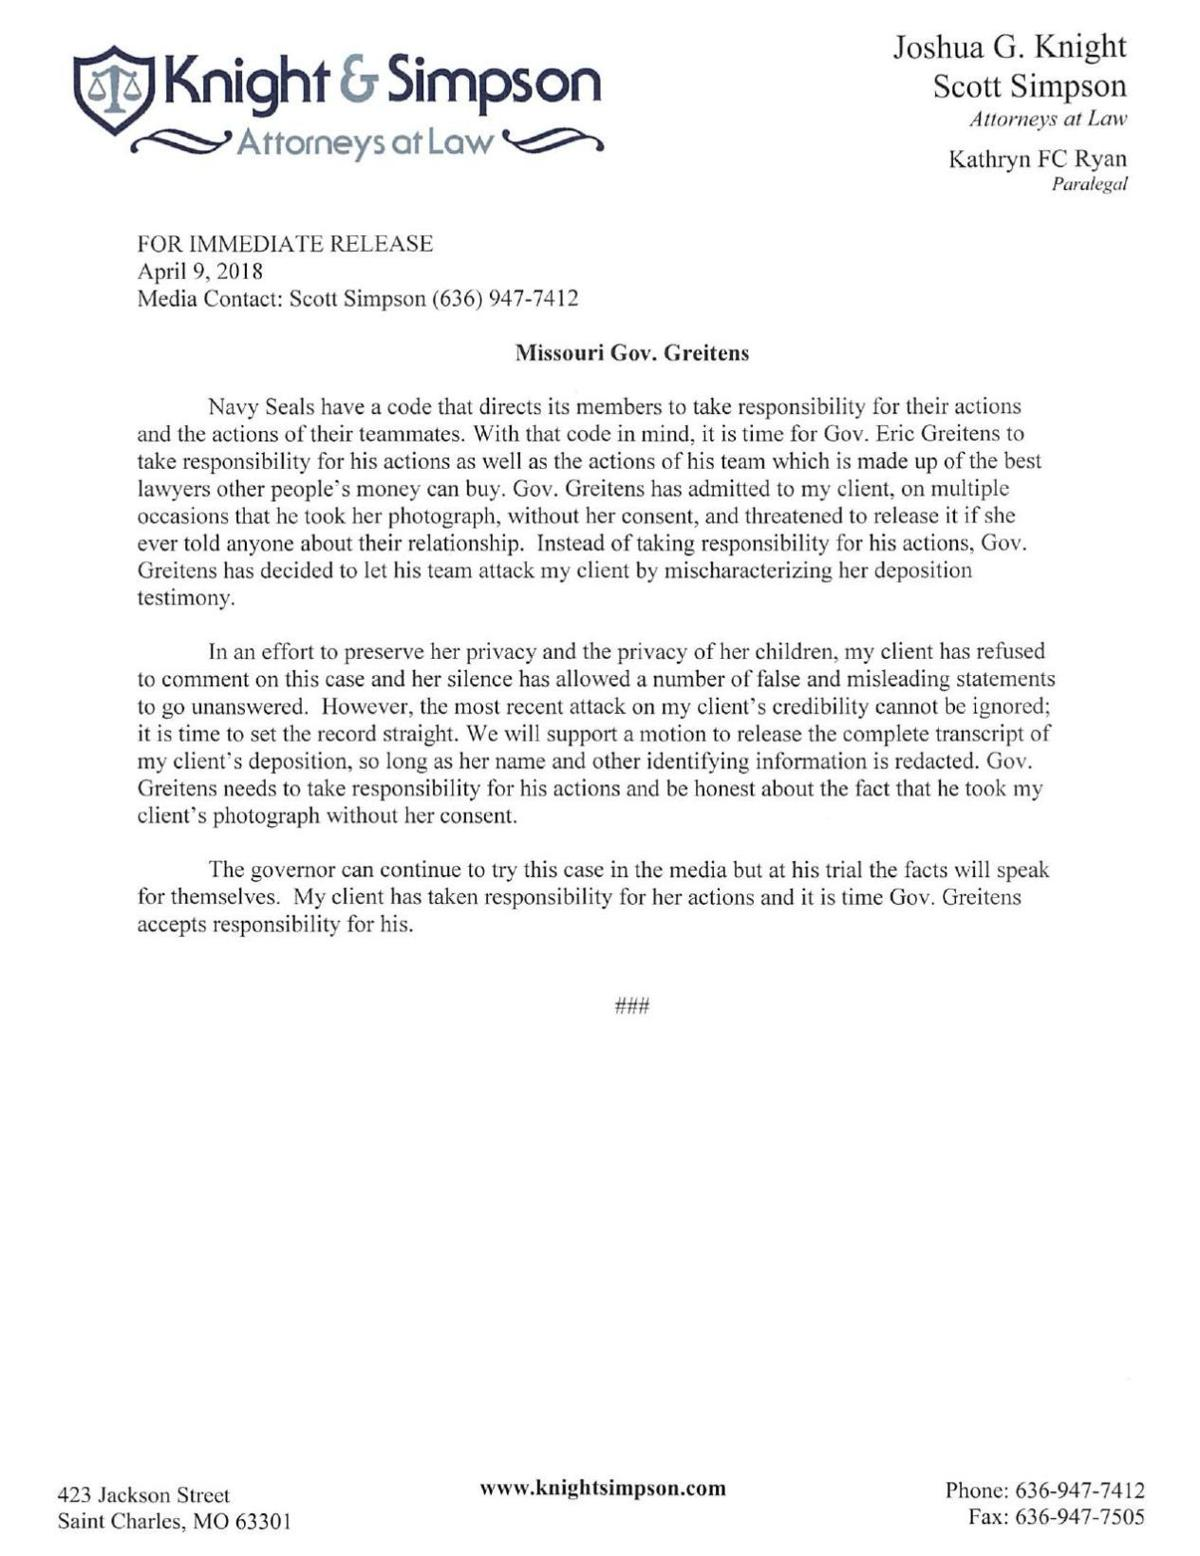 Statement from lawyer